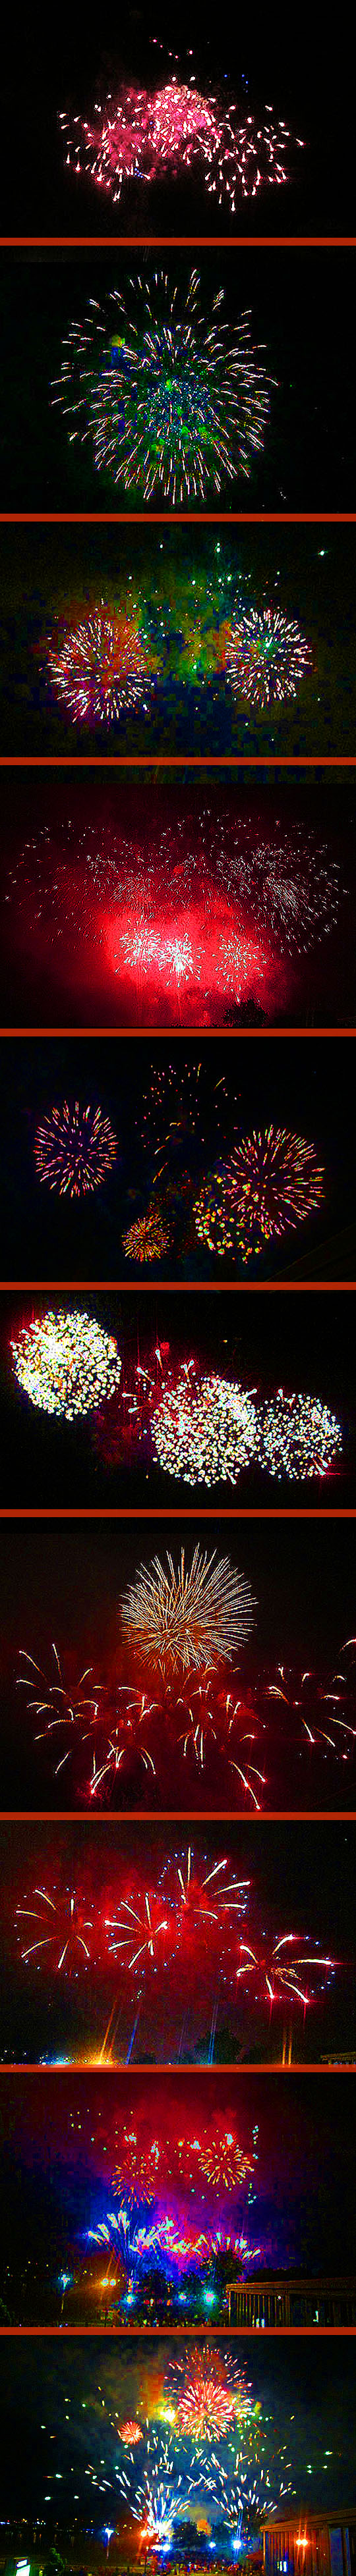 12a. fireworks_july5-18.jpg